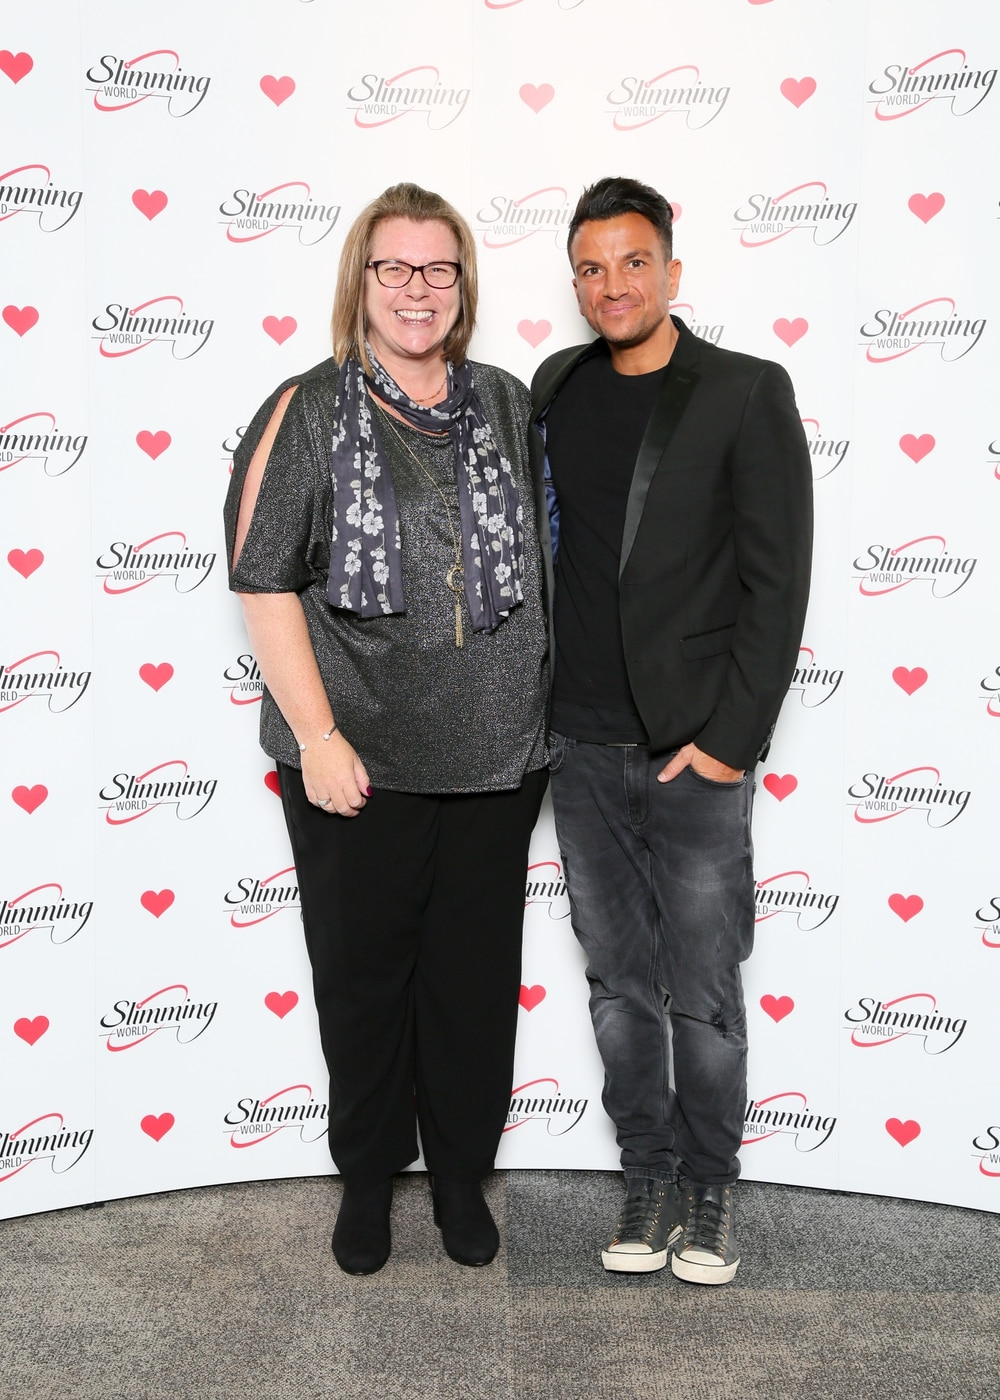 Slimming World boss meets Peter Andre  Shropshire Star